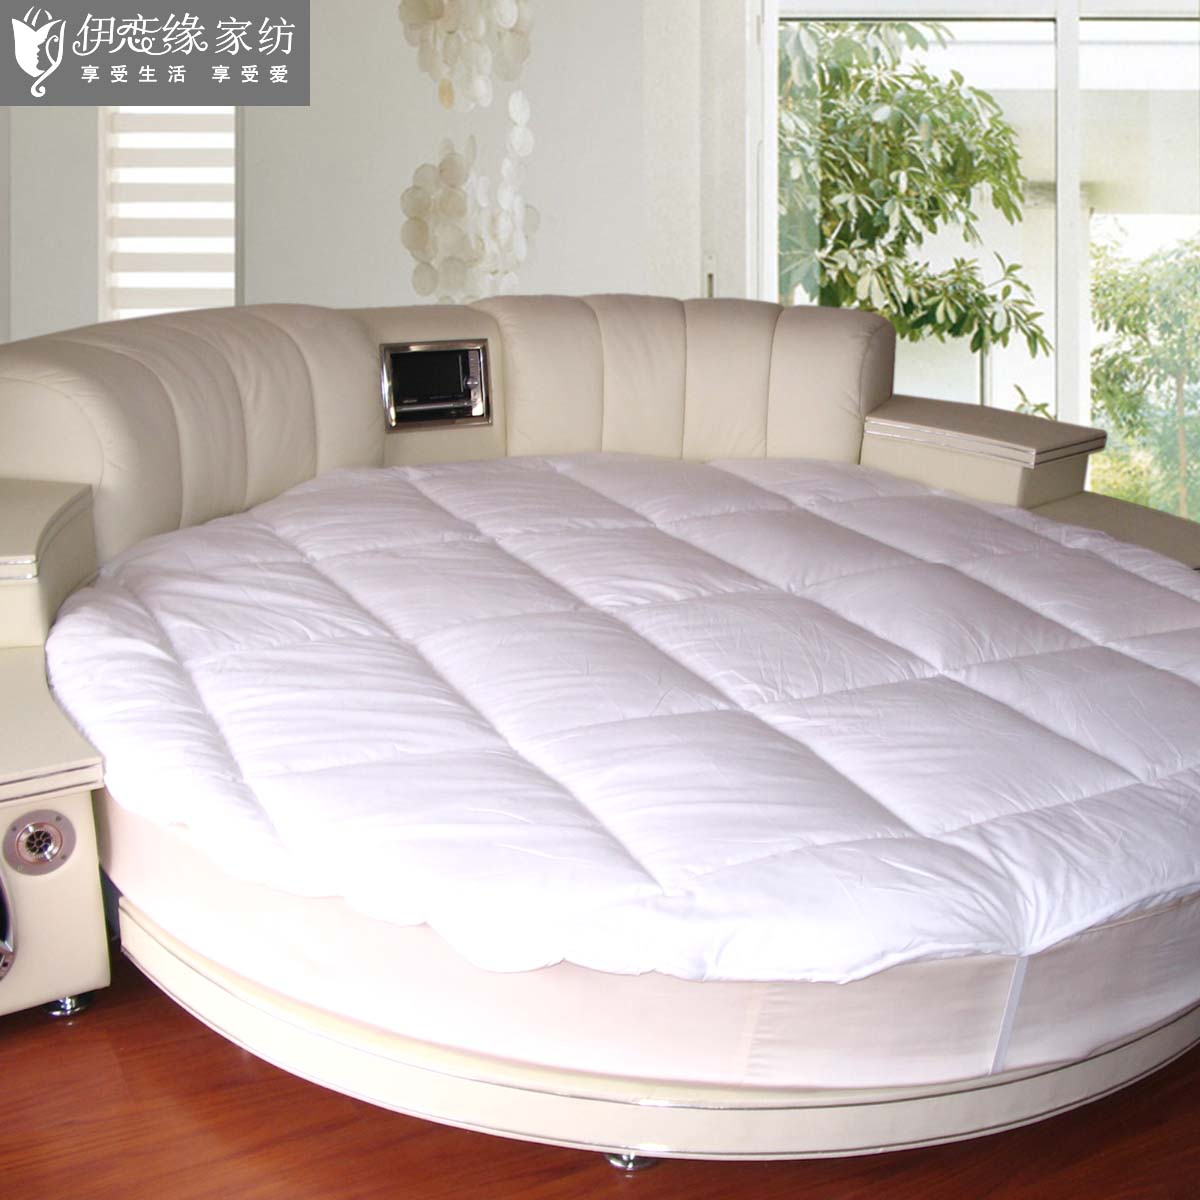 Love iraqi edge thanksgiving thick warm bedding round bed round bed mattress folding bed mattress mattresses